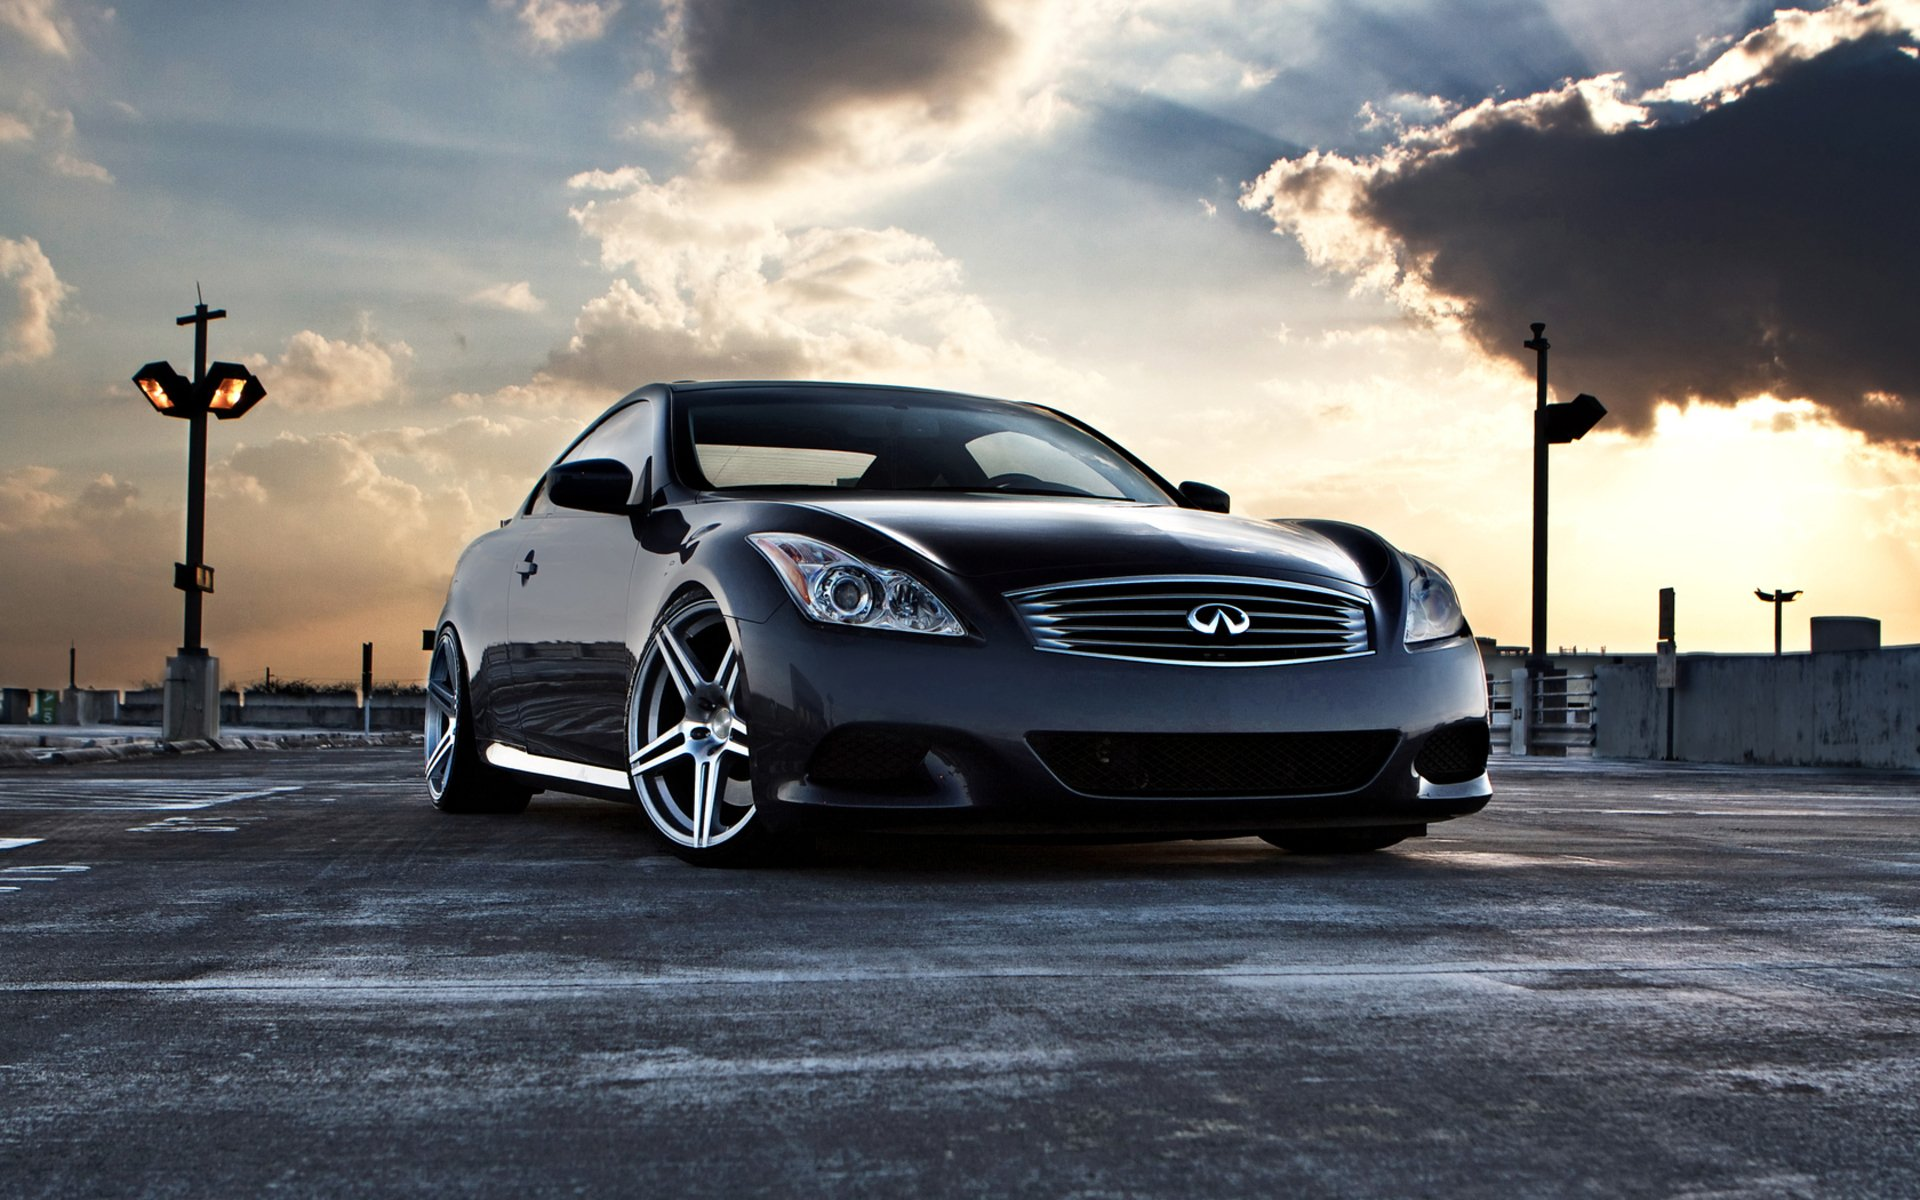 Infiniti G37 Full HD Wallpaper And Background Image